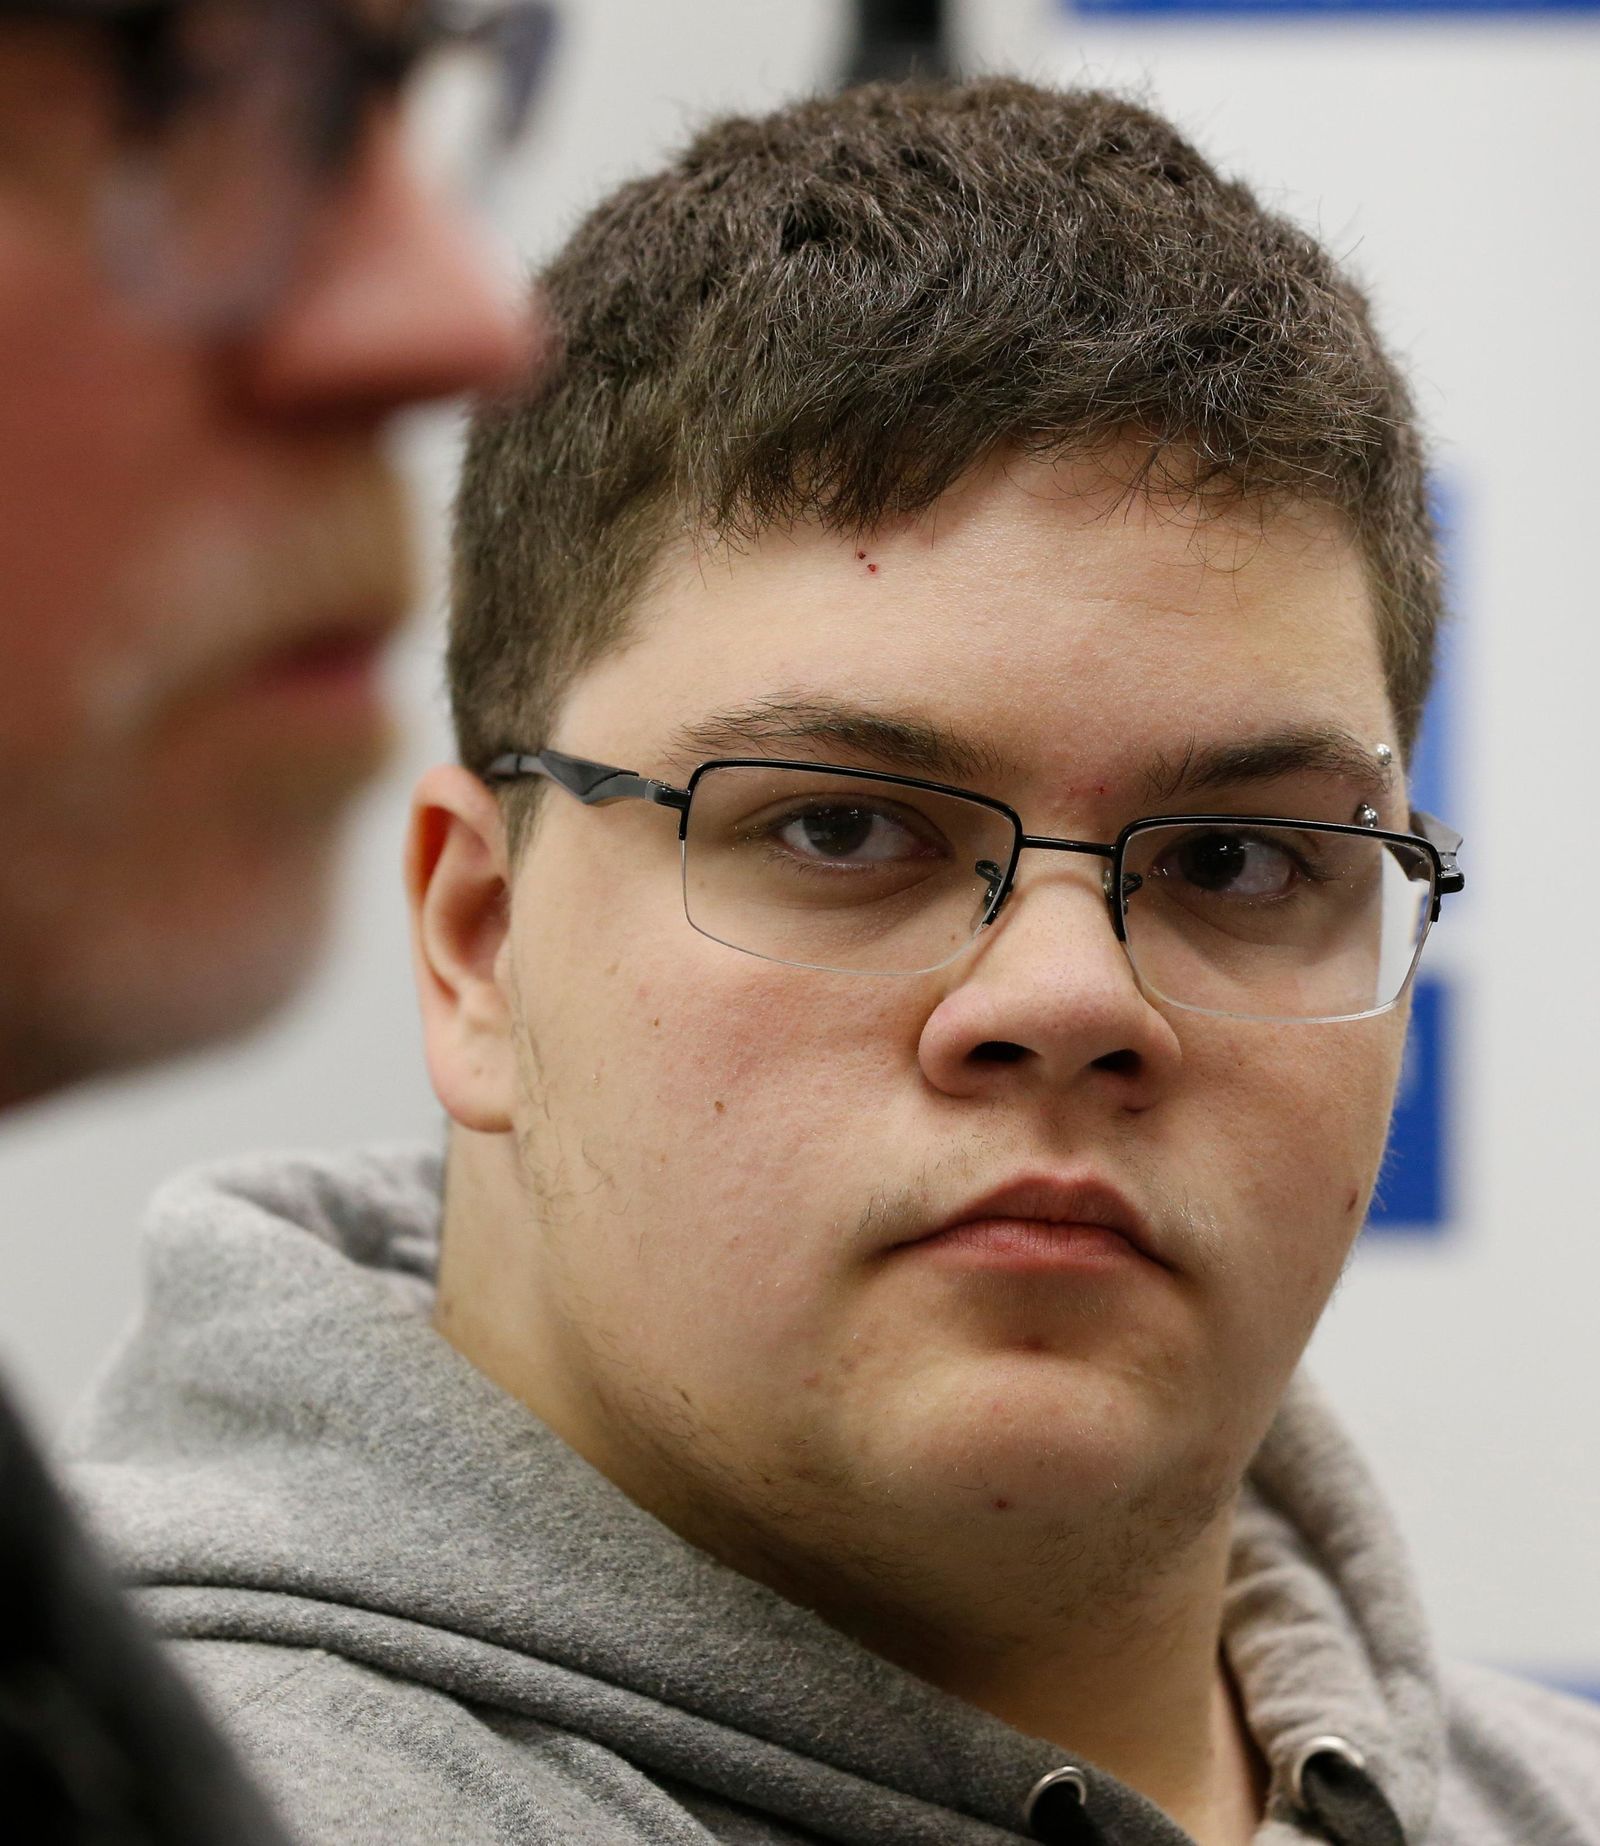 FILE - In this March 6, 2017, file photo, Gloucester County High School senior Gavin Grimm, a transgender student, listens to a speaker during a news conference in Richmond, Va. (AP Photo/Steve Helber, File)